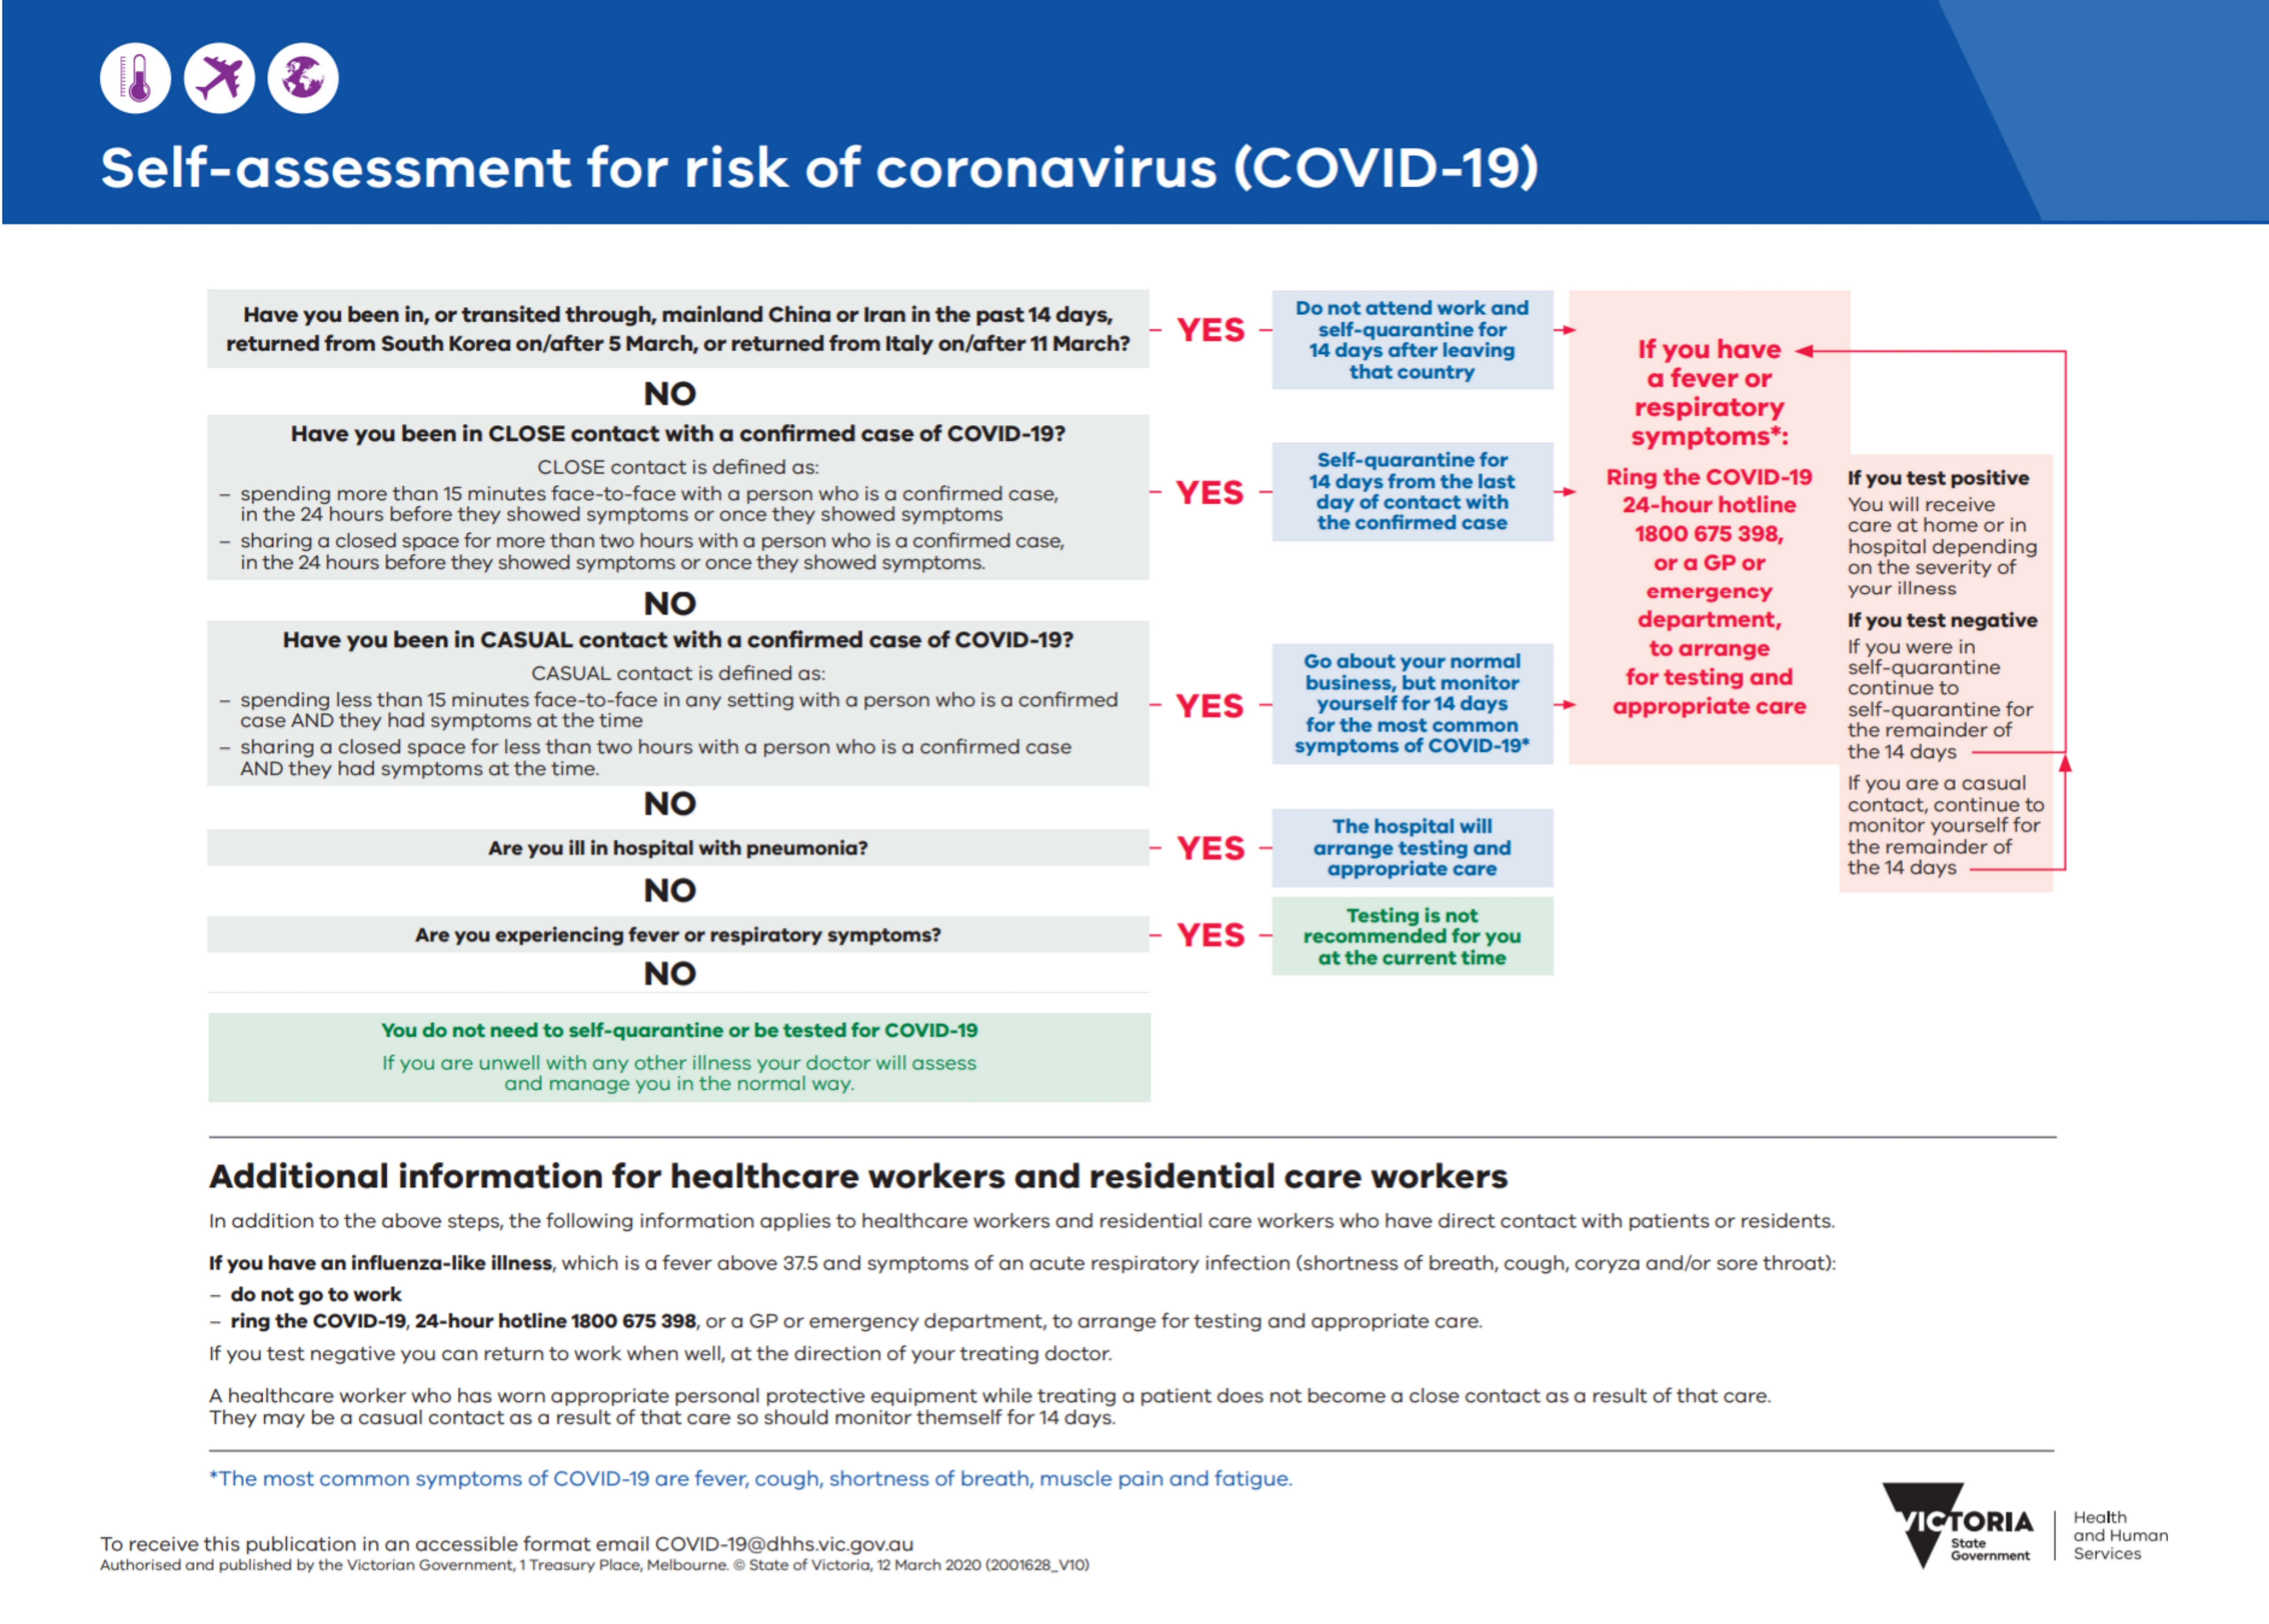 Self assessment for risk of coronavirus COVID-19